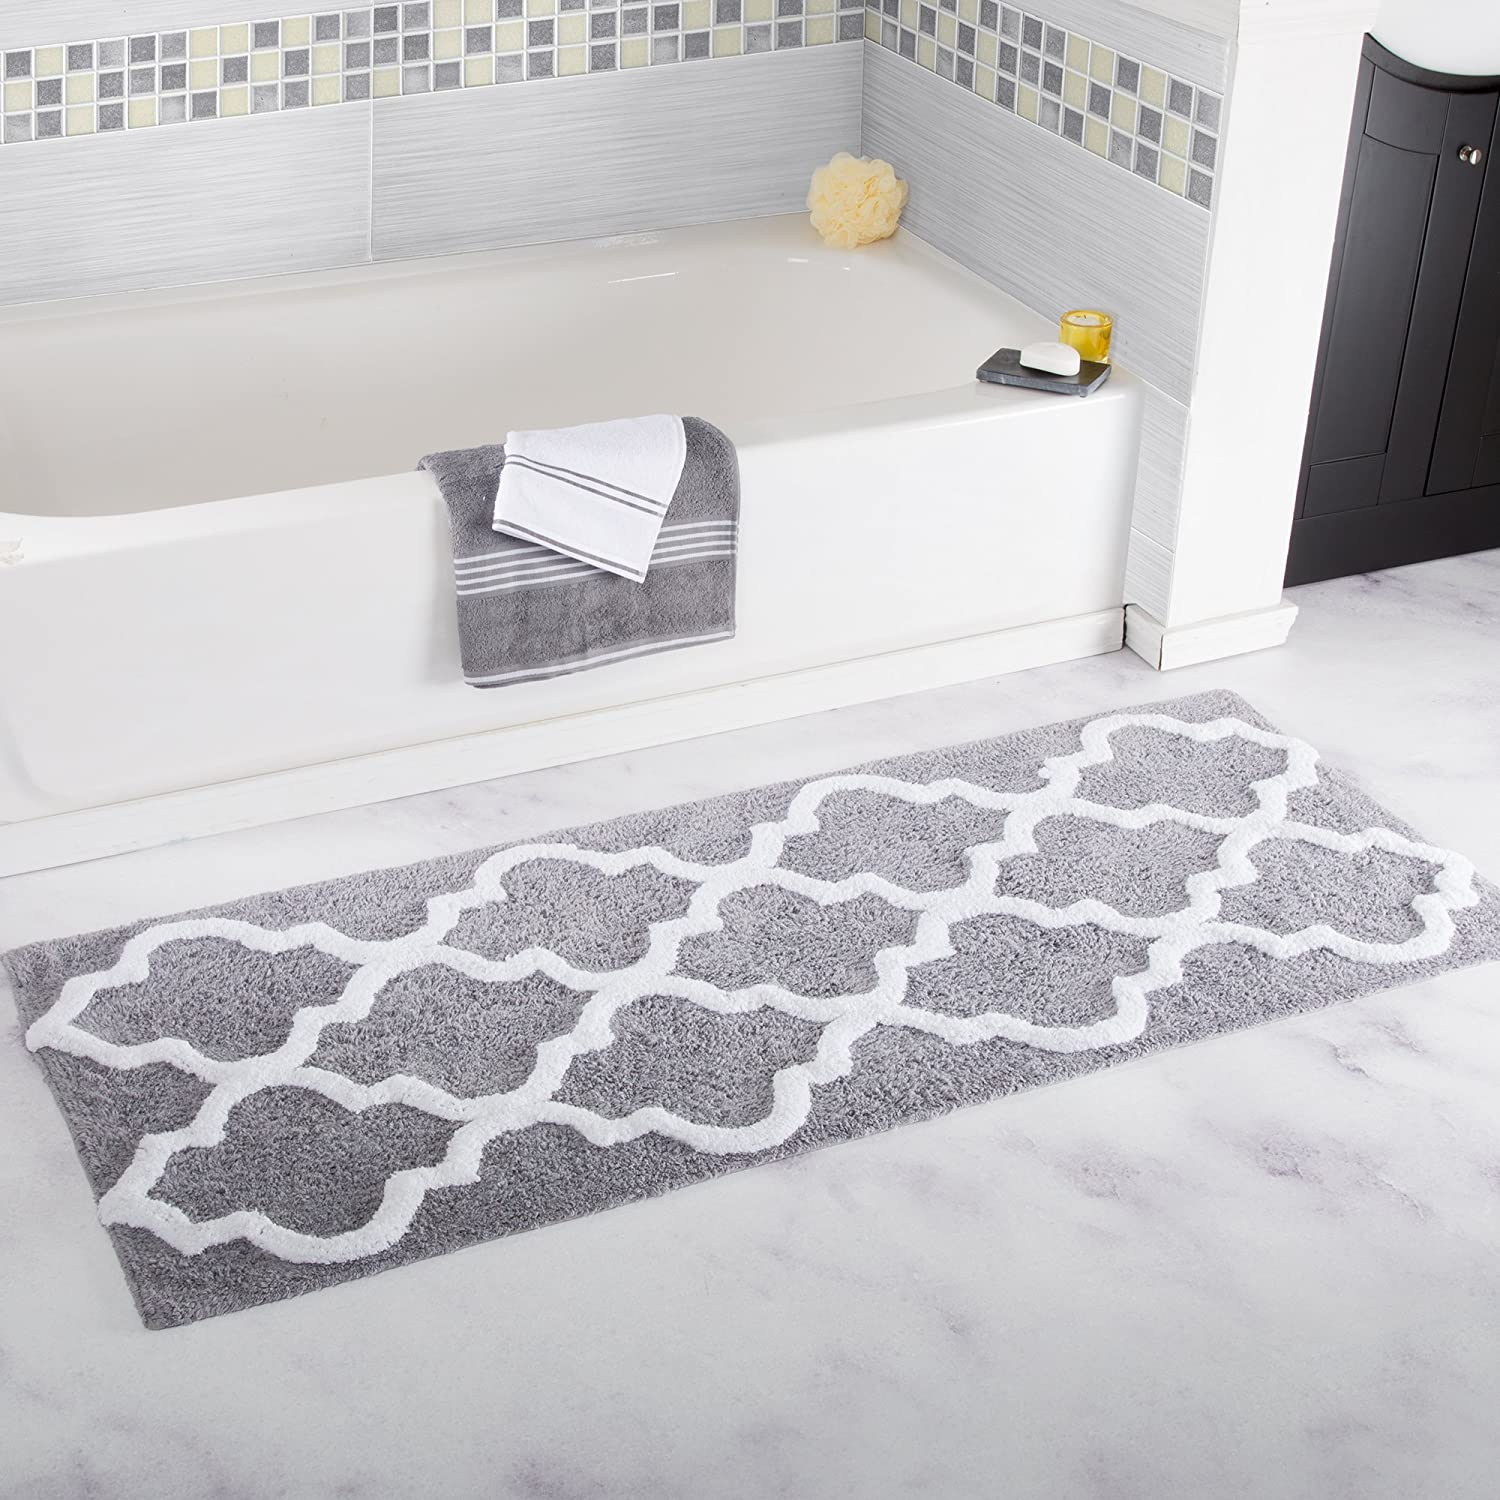 hardware romanesque mats memory shop x foam com at shower roth border allen in bathroom polyester pl lowes accessories rugs bath